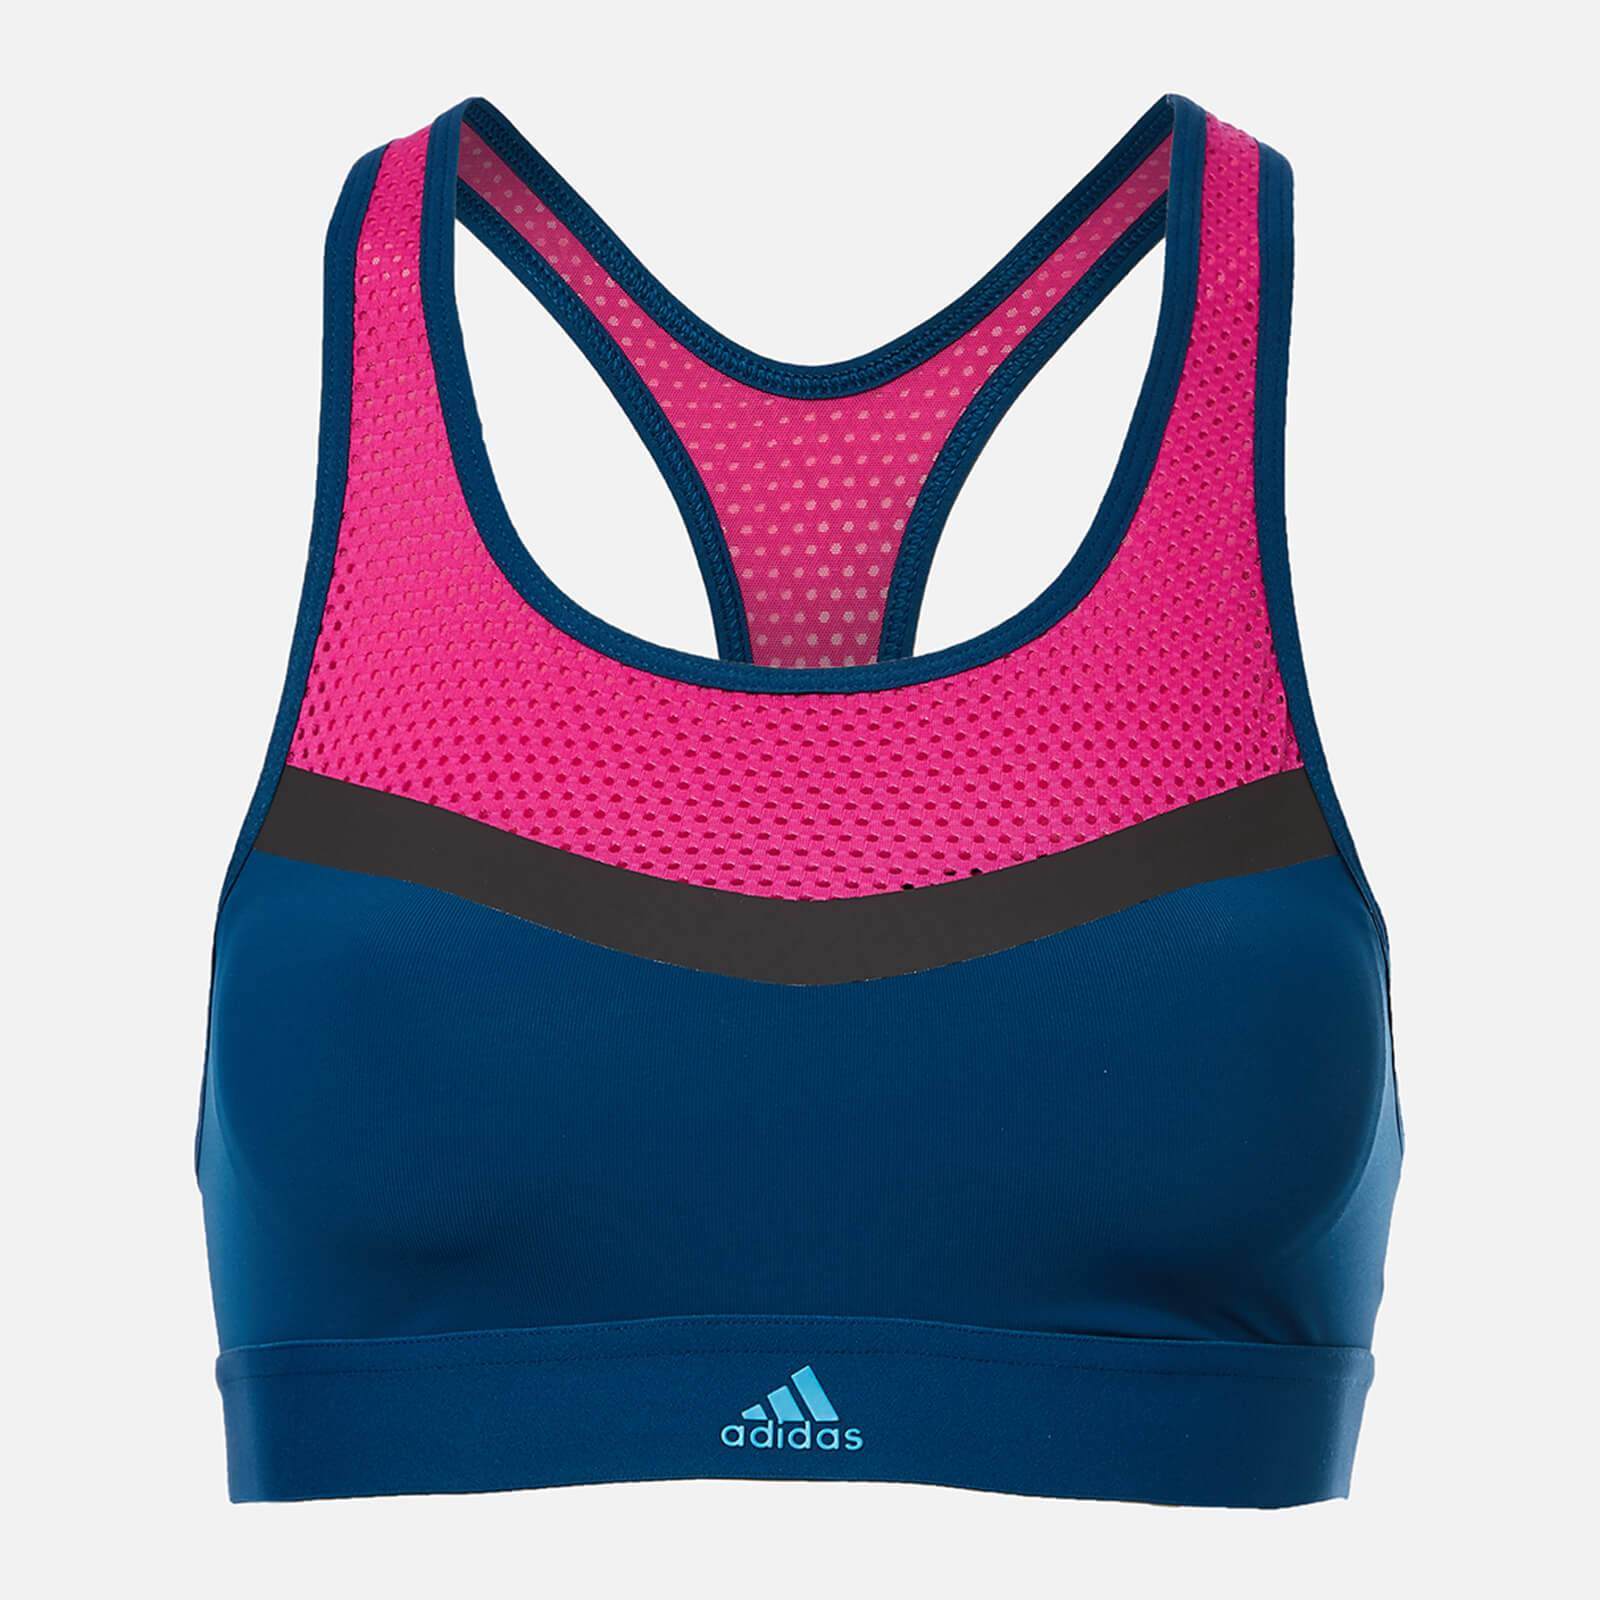 adidas Women's Don't Rest Swim Crop Top - Blue/Pink - 34B - Multi